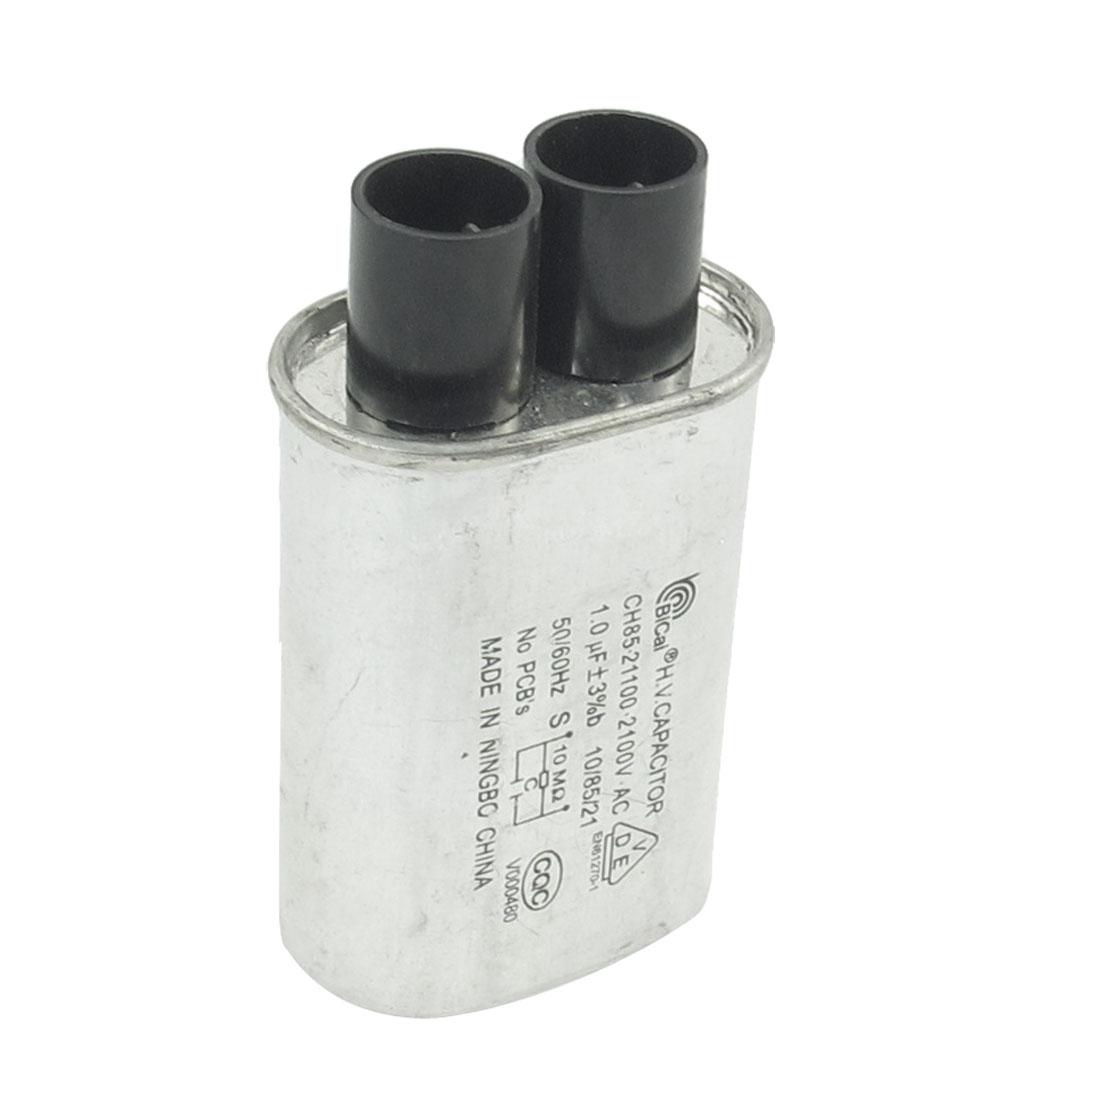 Microwave Oven AC 2100V 1.0uF Cylindrical Capacitor CH85